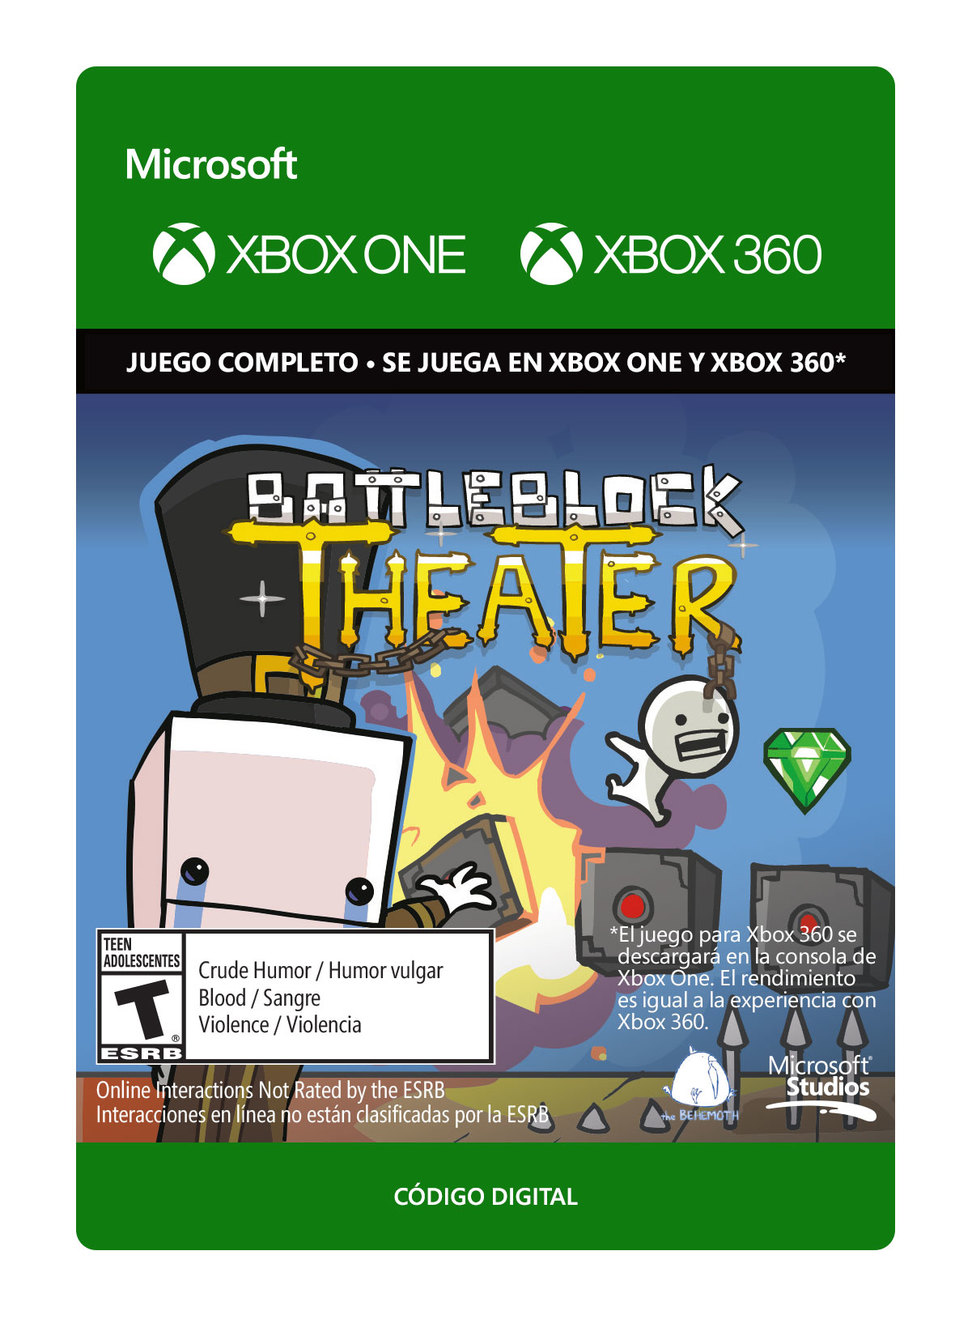 Battleblock Theater - Xbox 360, Xbox One - Descarga - Esd